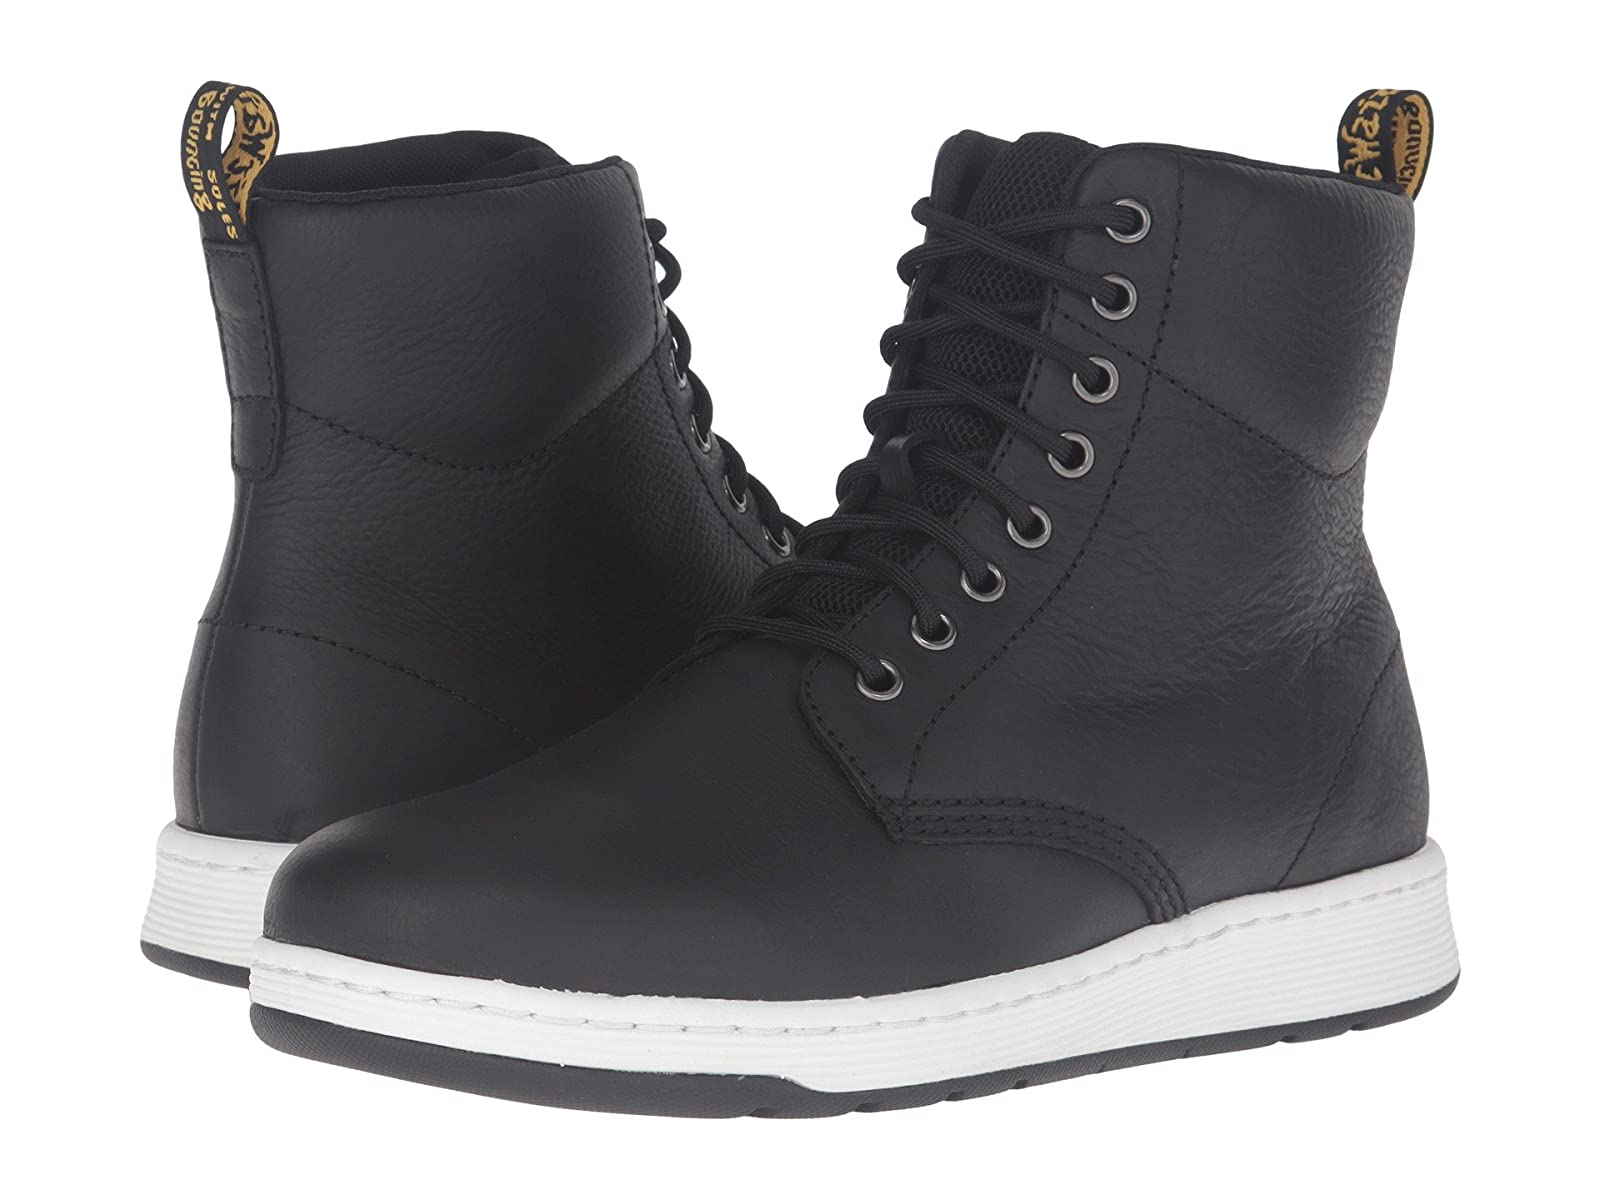 Dr. Martens Rigal 8-Eye BootCheap and distinctive eye-catching shoes